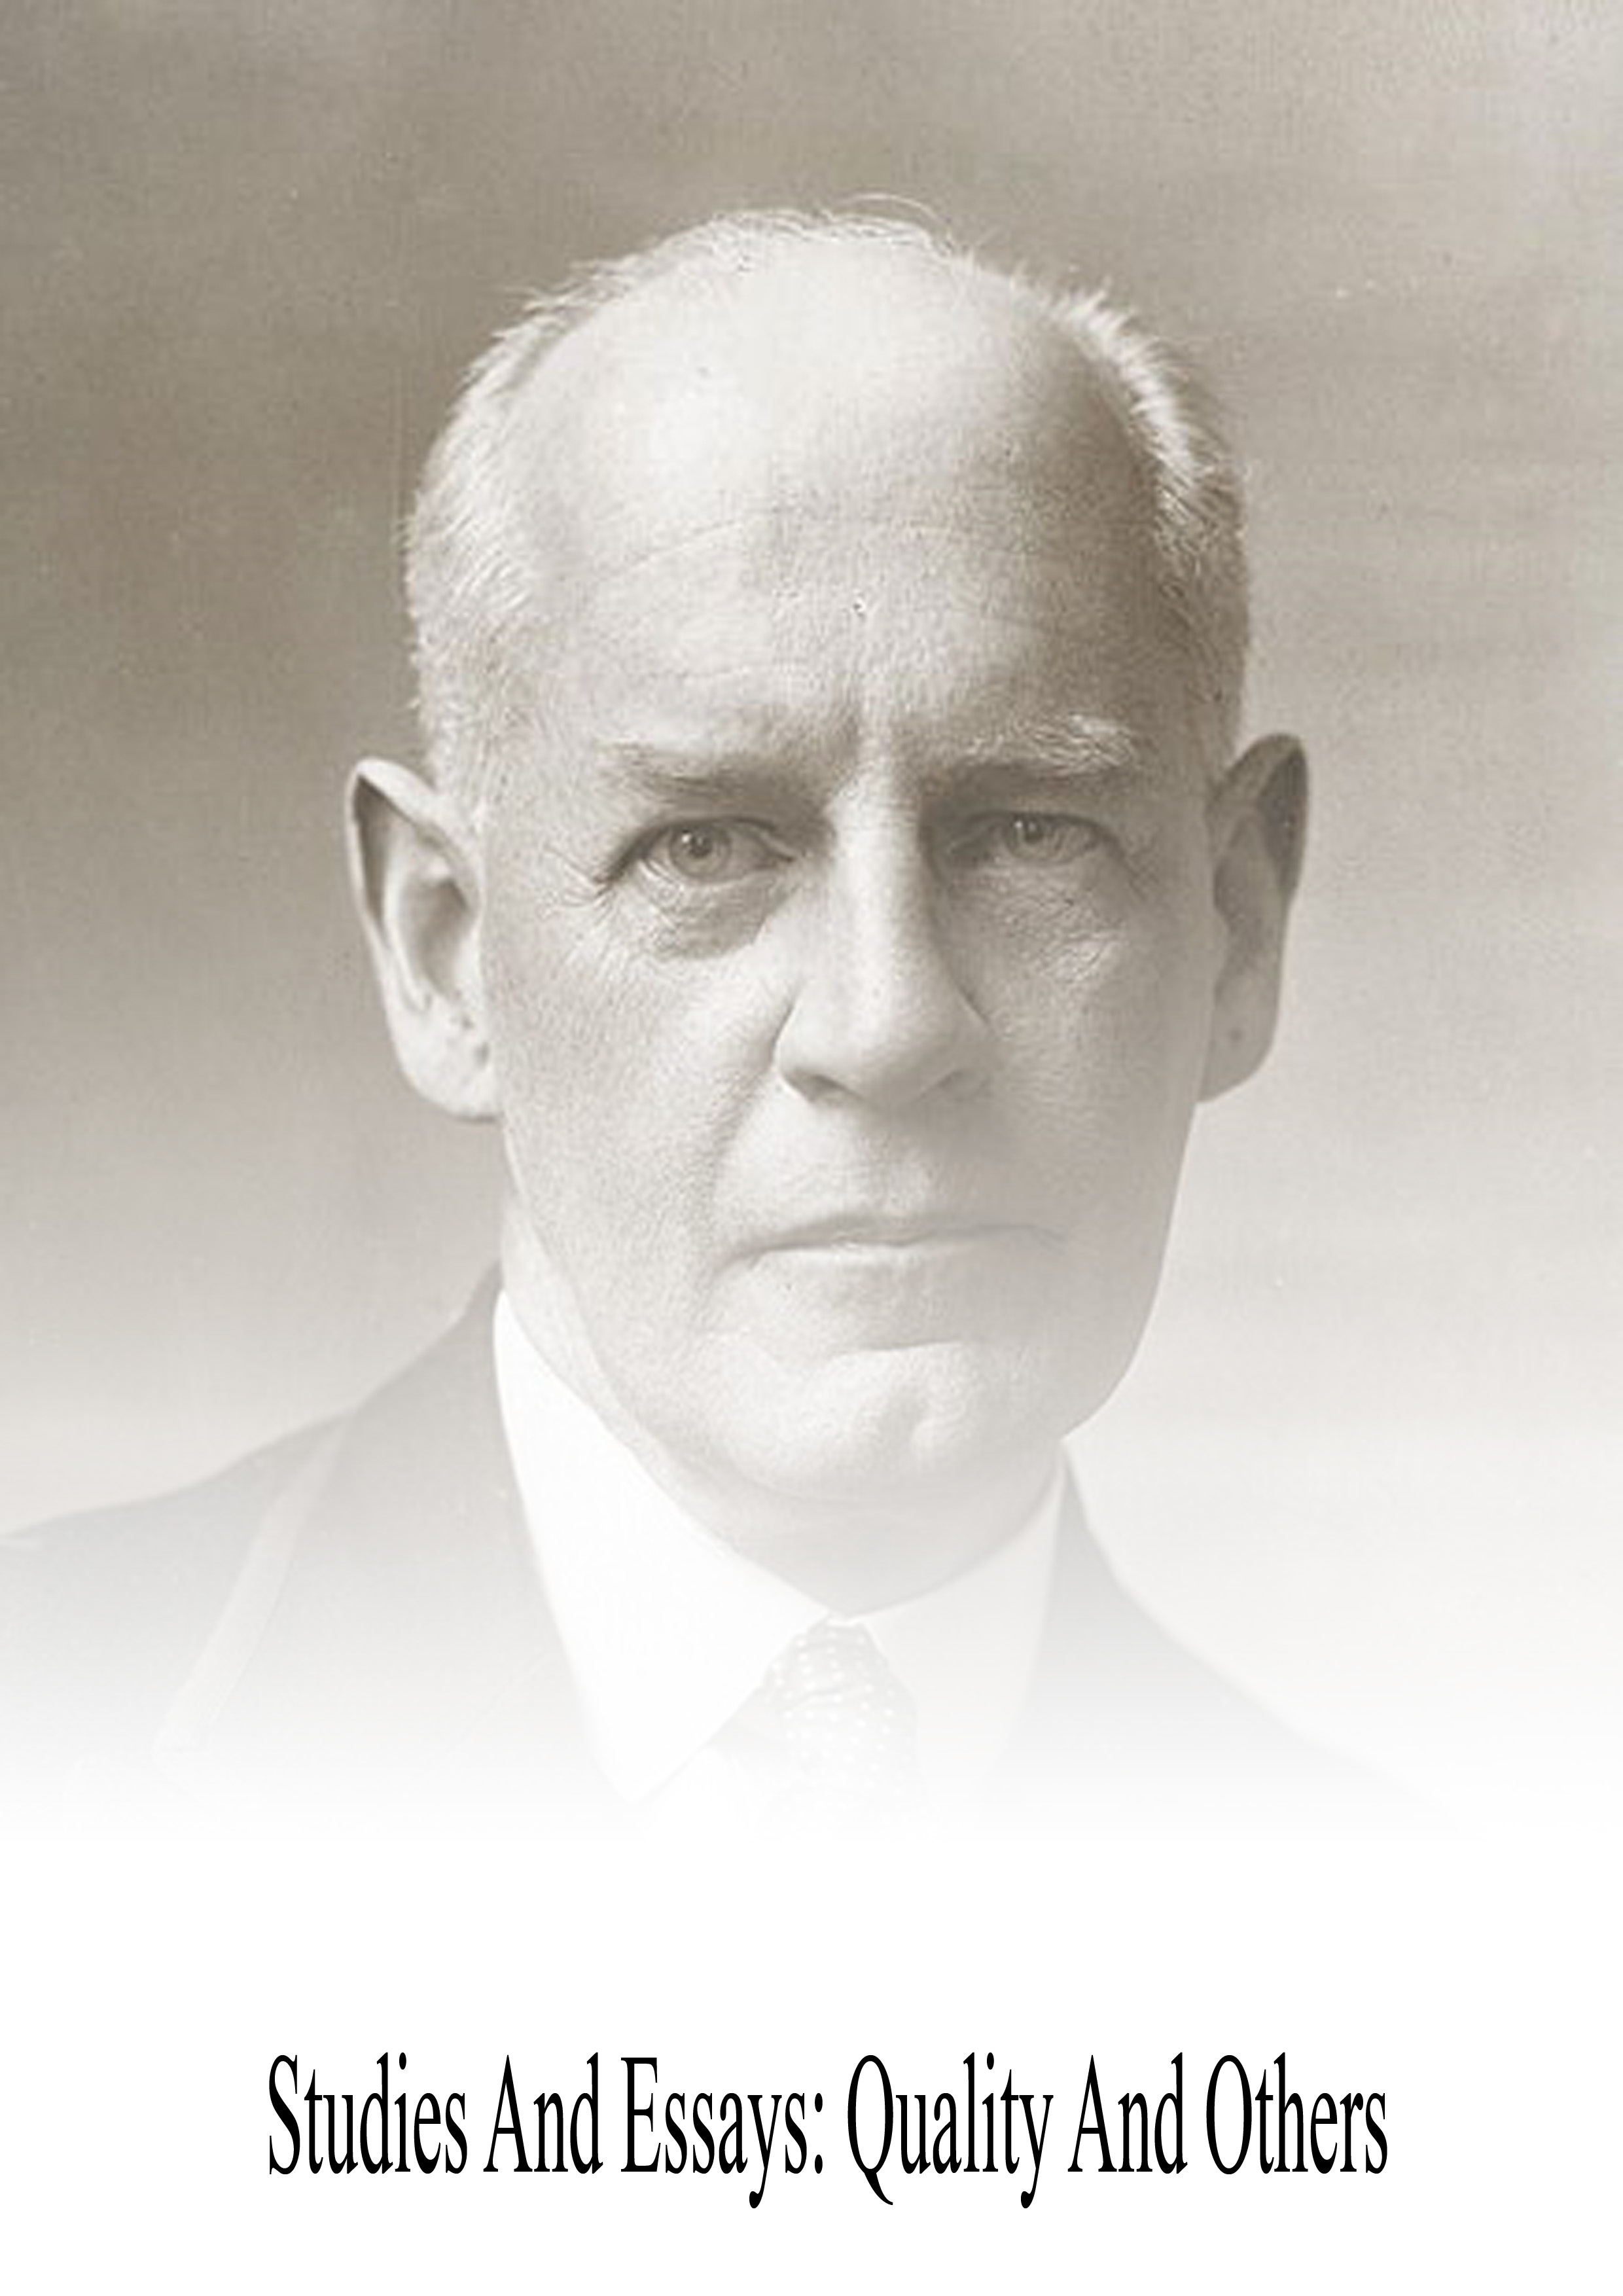 essays plot of quality by john galsworthy Find all available study guides and summaries for quality by john galsworthy if there is a sparknotes, shmoop, or cliff notes guide, we will have it listed here.